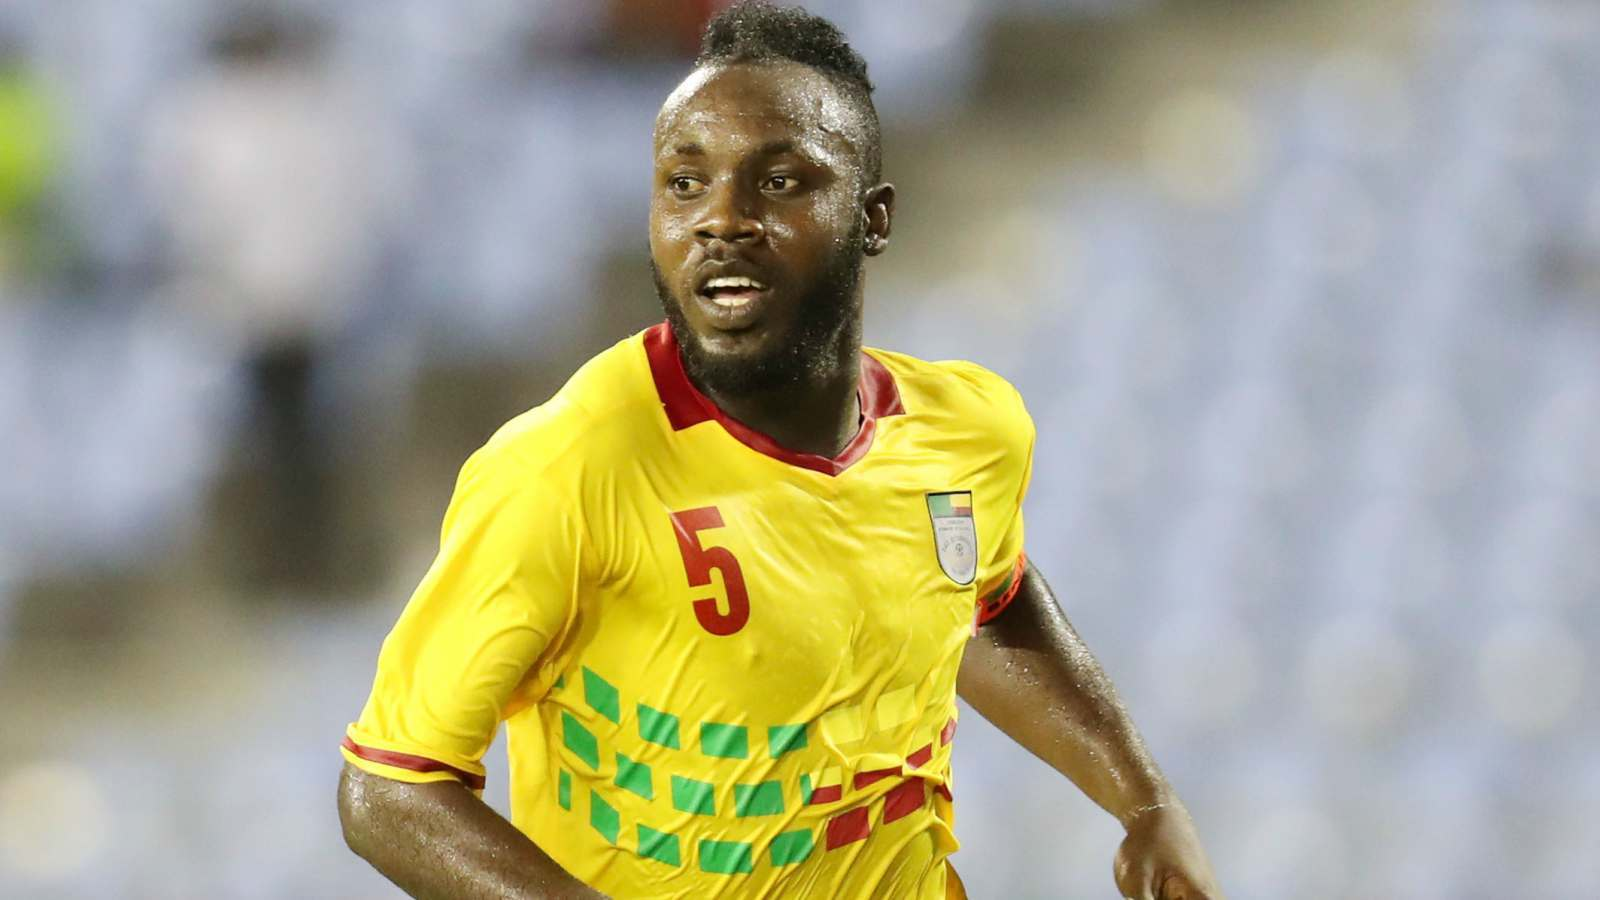 Plateau United defender Salomon named in Benin Squad For AFCON 2019